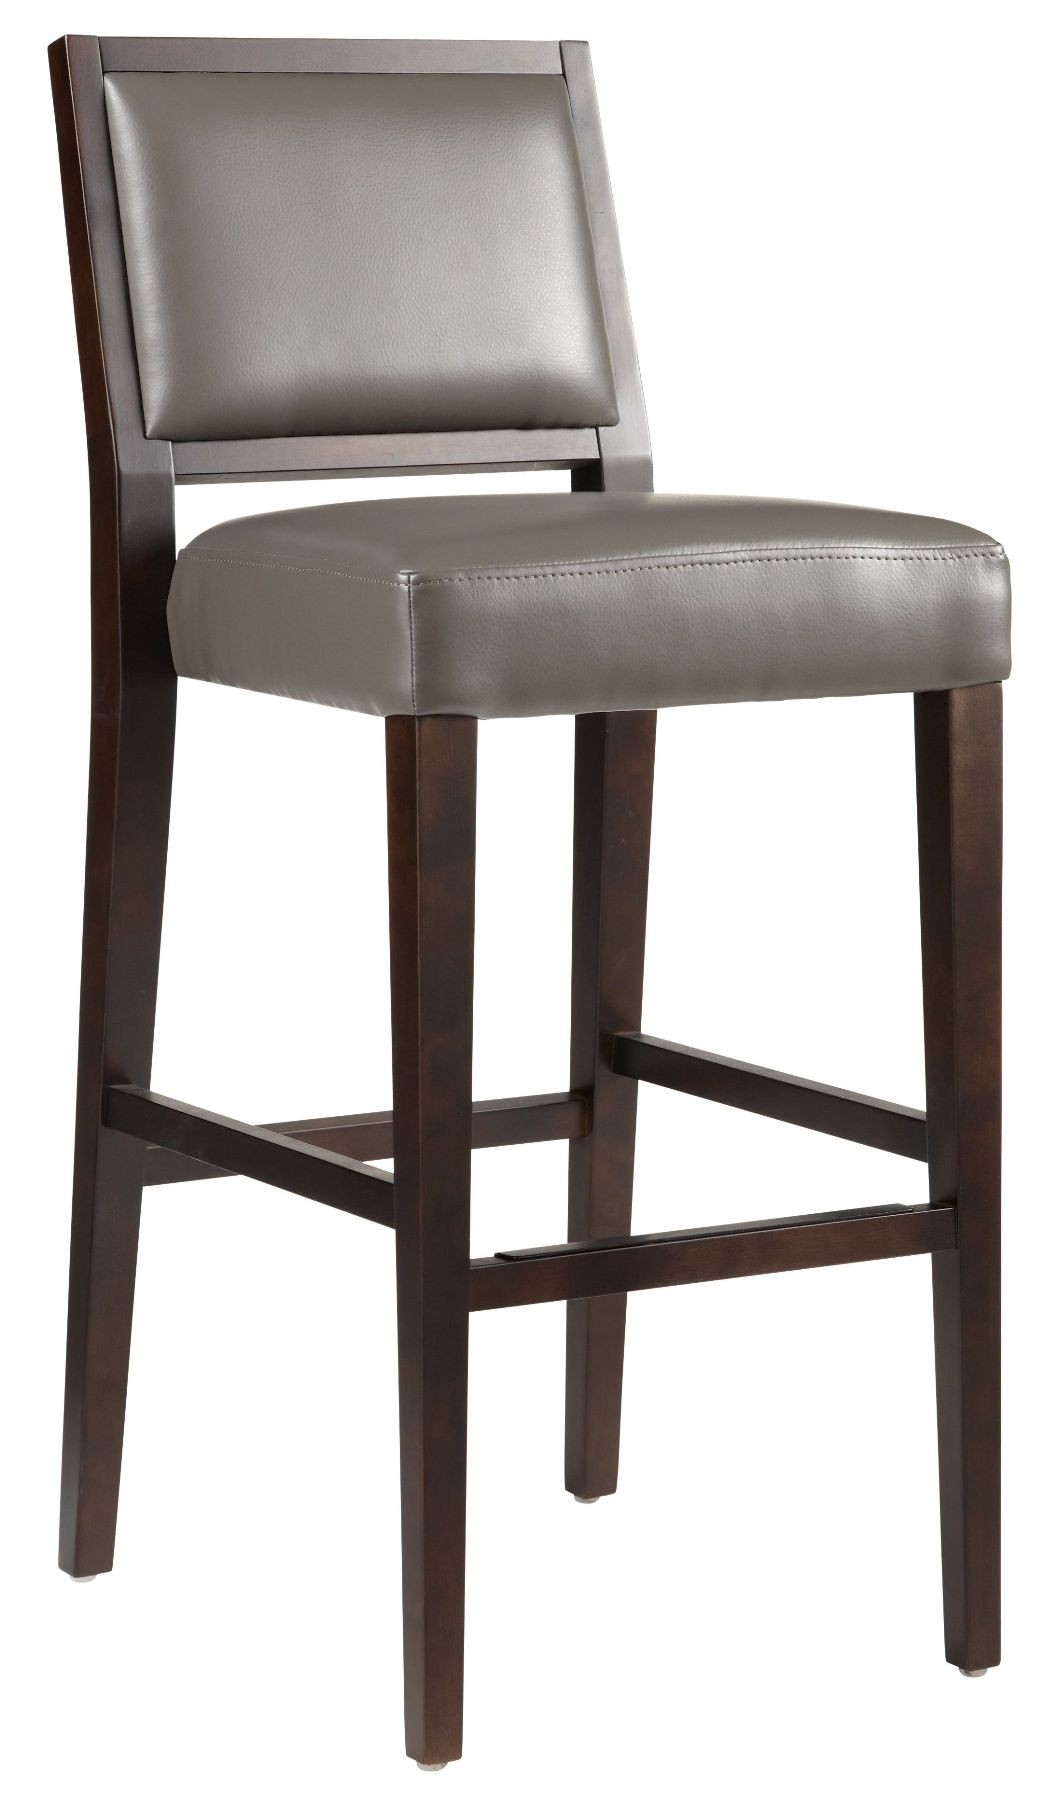 Citizen Grey Barstool From Sunpan 49058 Coleman Furniture